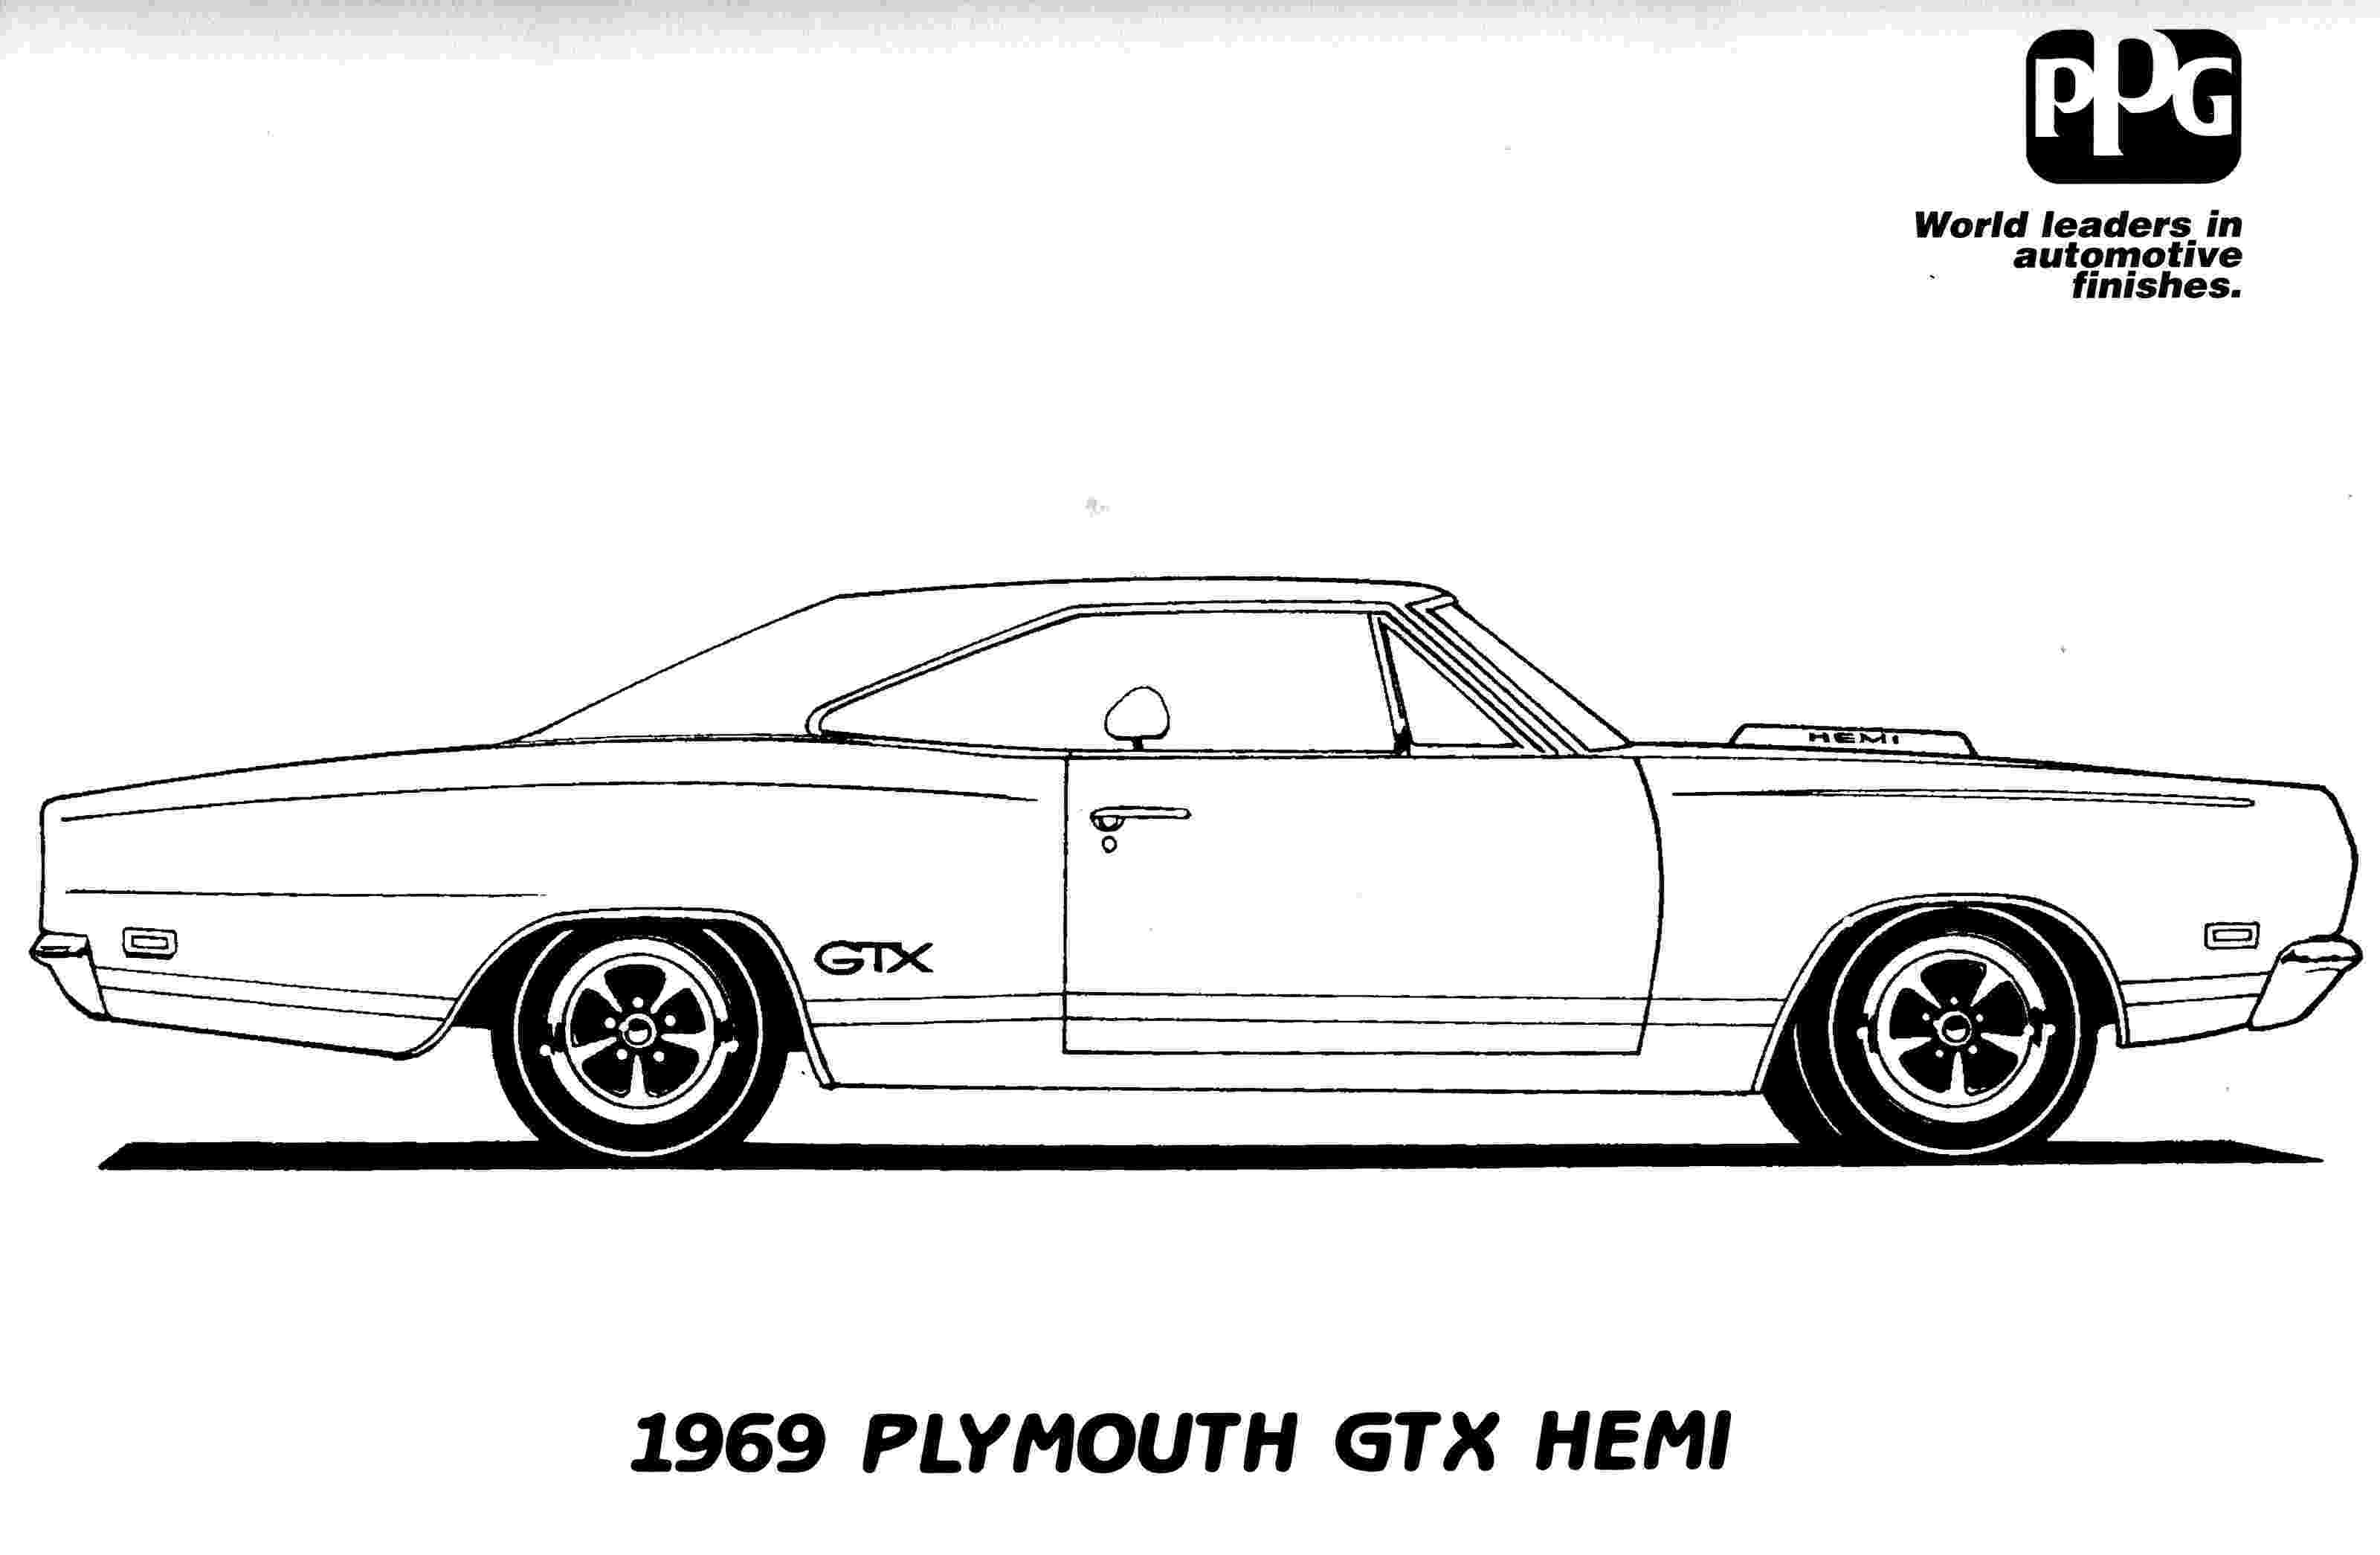 coloring pages muscle cars muscle car coloring pages to download and print for free muscle cars coloring pages 1 1